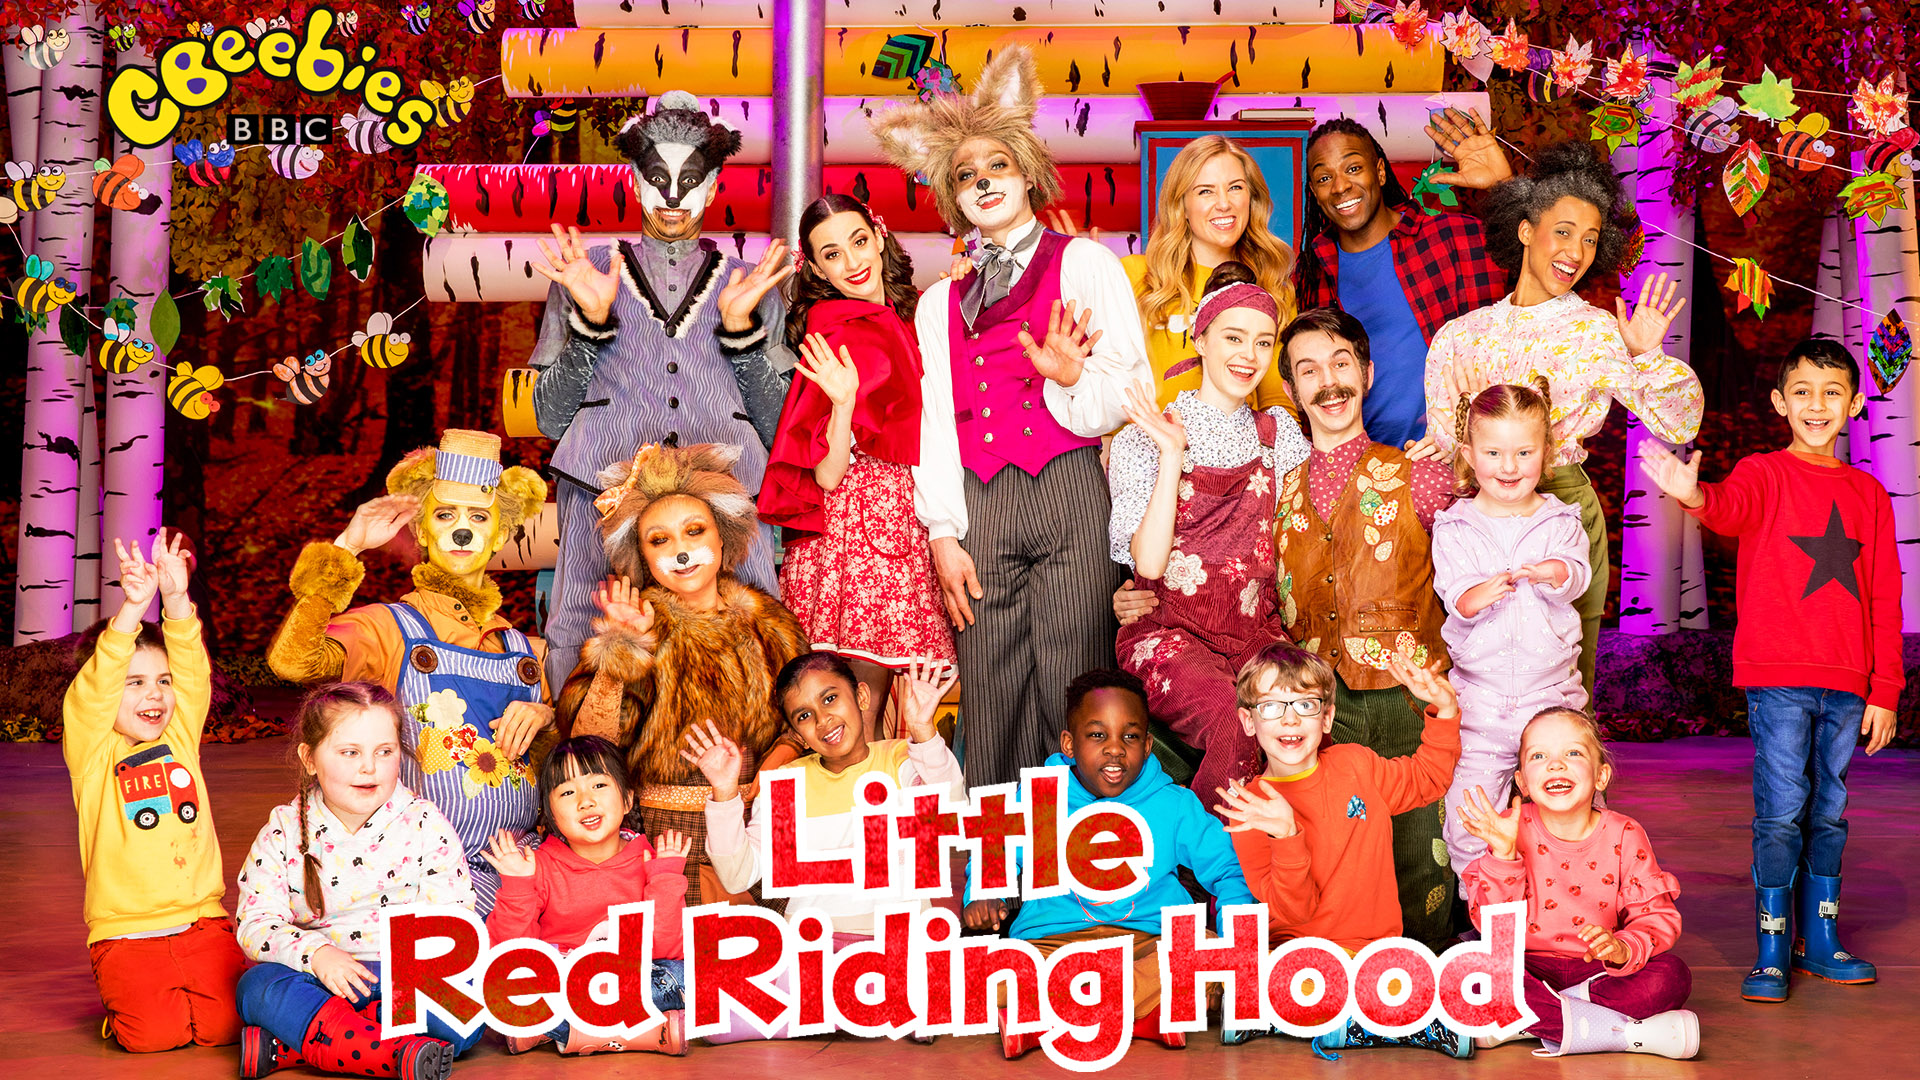 CBeebies Ballet - Little Red Riding - Full Cast Promotional Photo